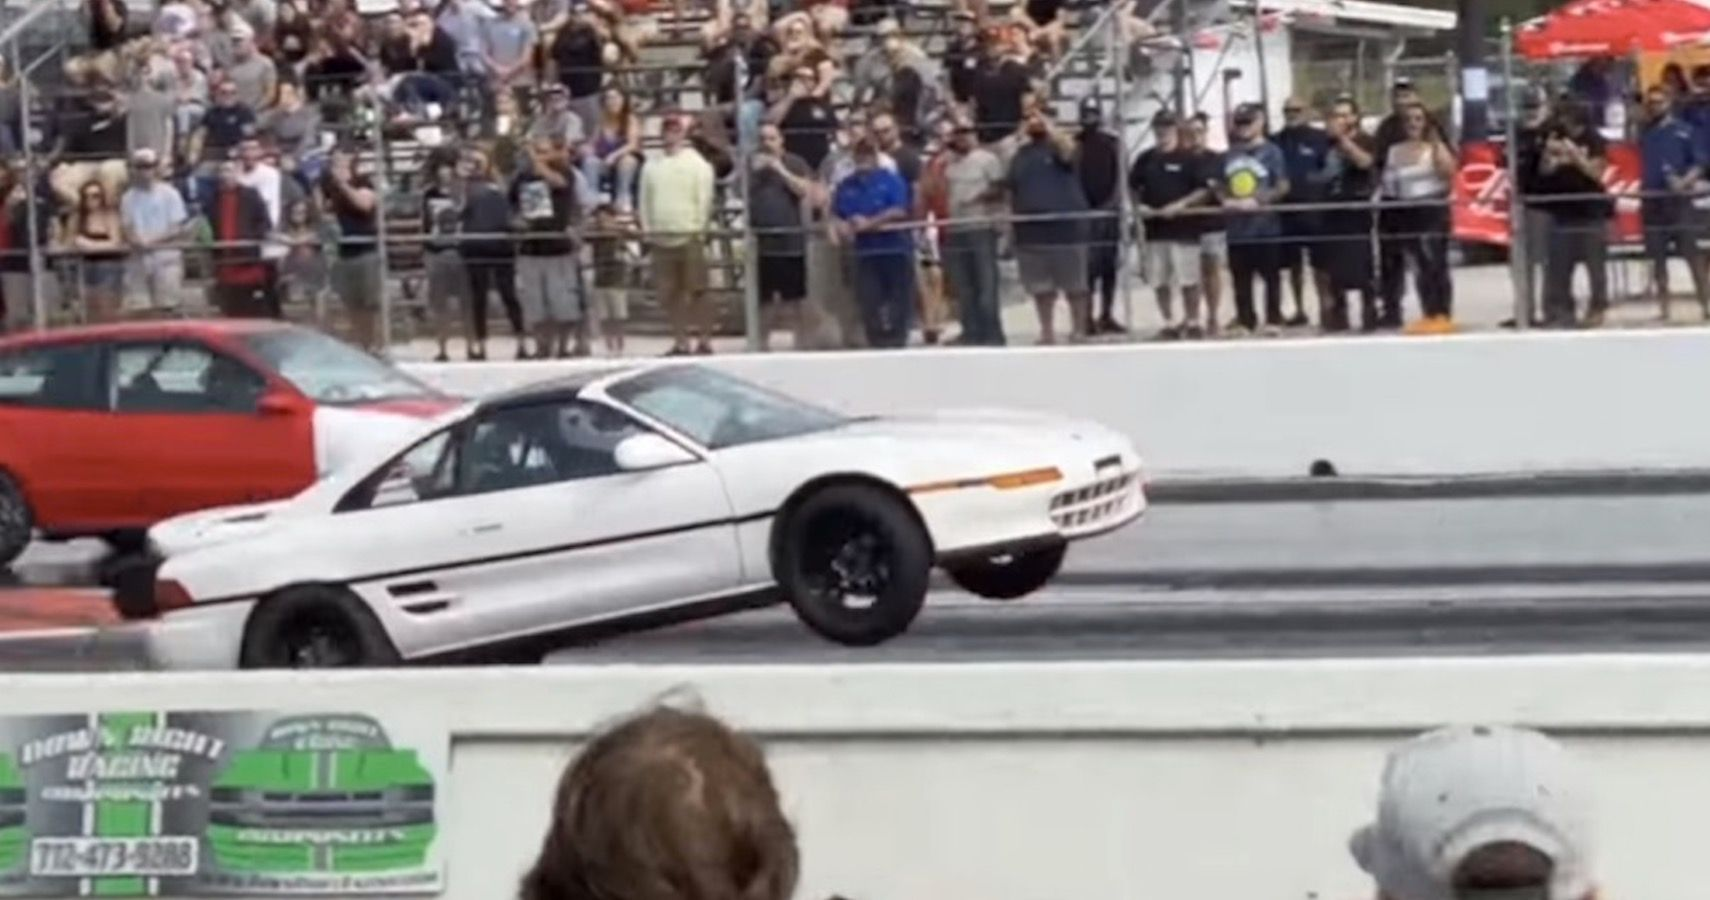 Watch This Twin-Turbo Toyota MR2 Pull Off A Long Wheelie During 8.6s Quarter-Mile Run